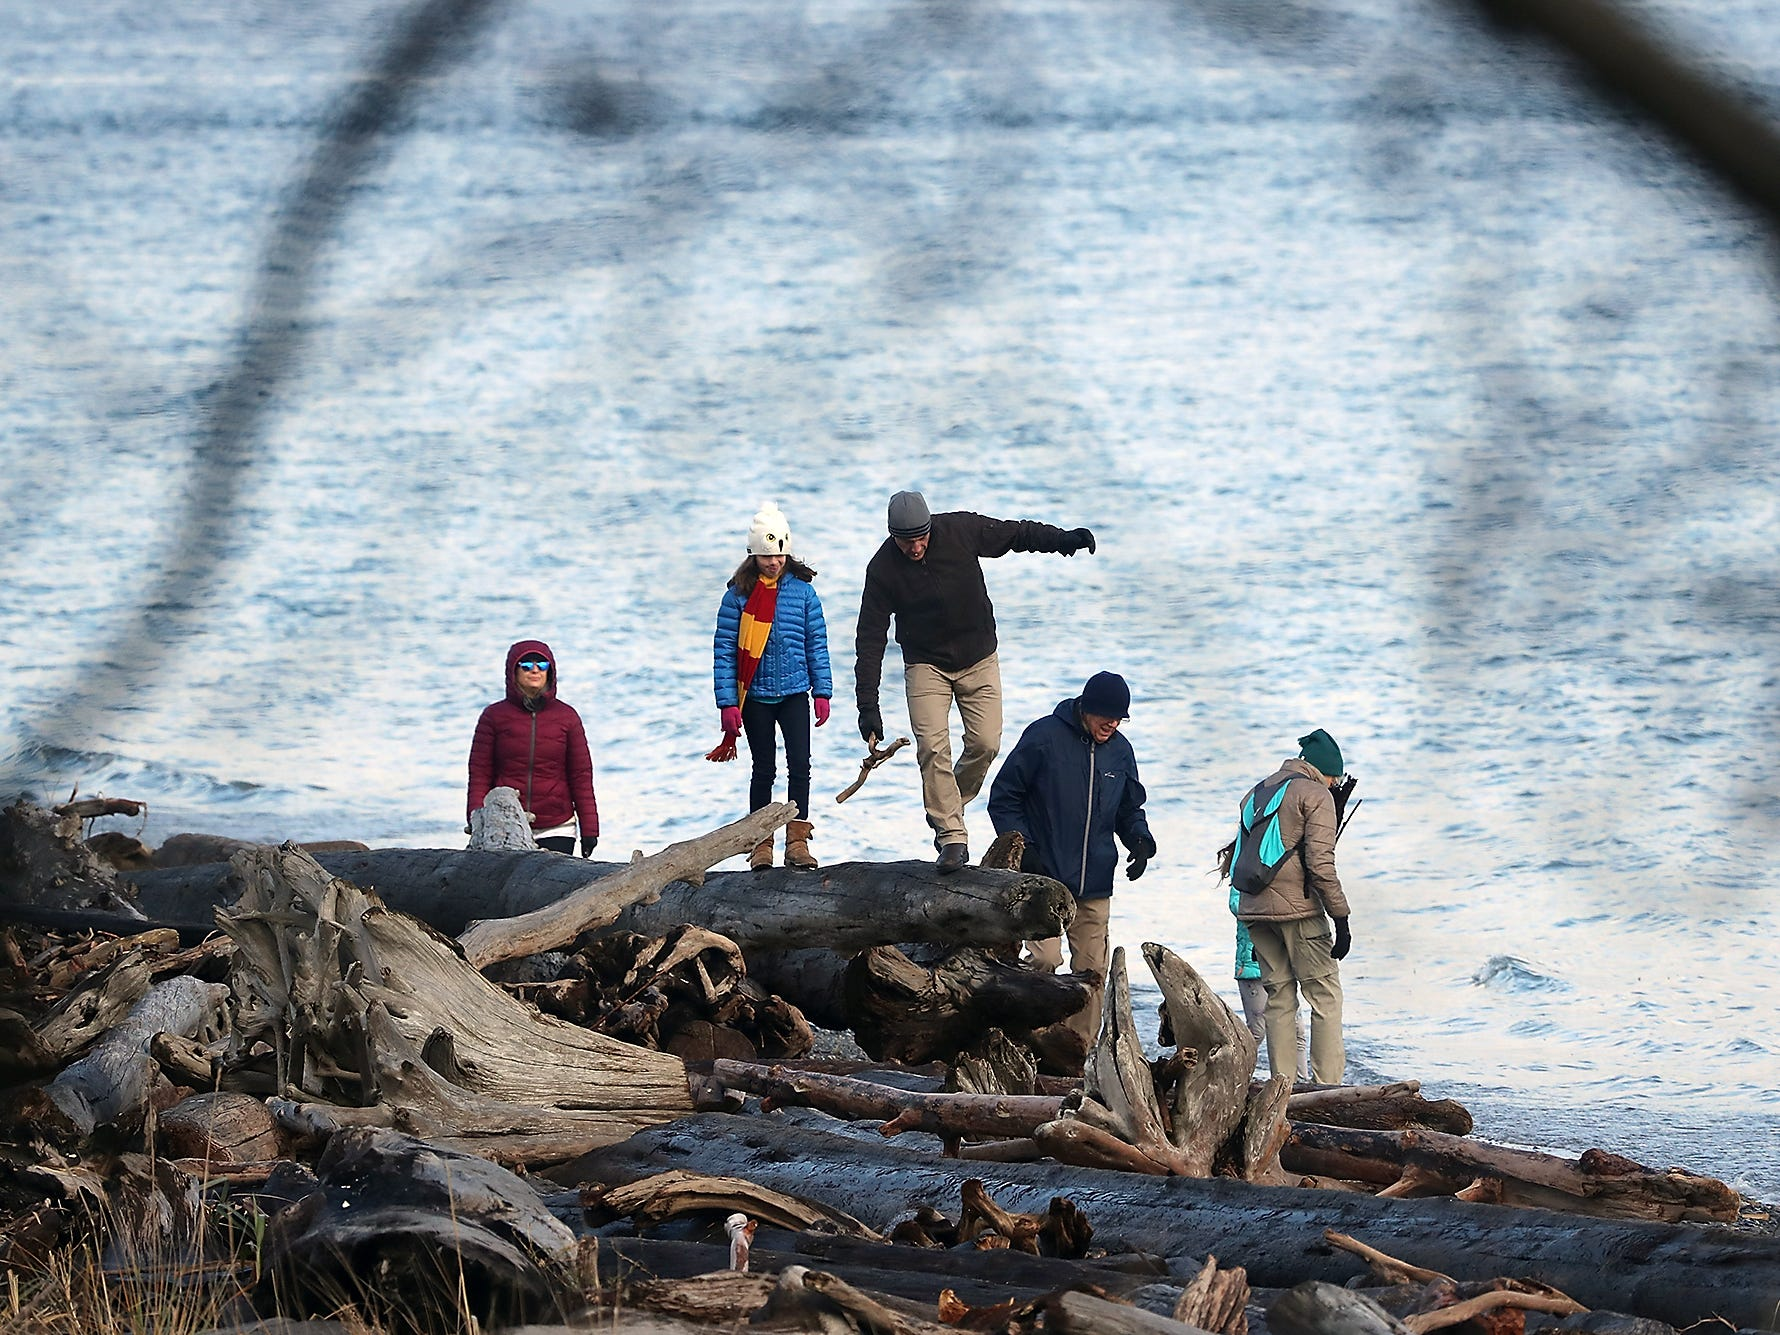 Beach walkers balance on the driftwood logs as they make their way down the shore at Point No Point in Hansville on Sunday, December 30, 2018.